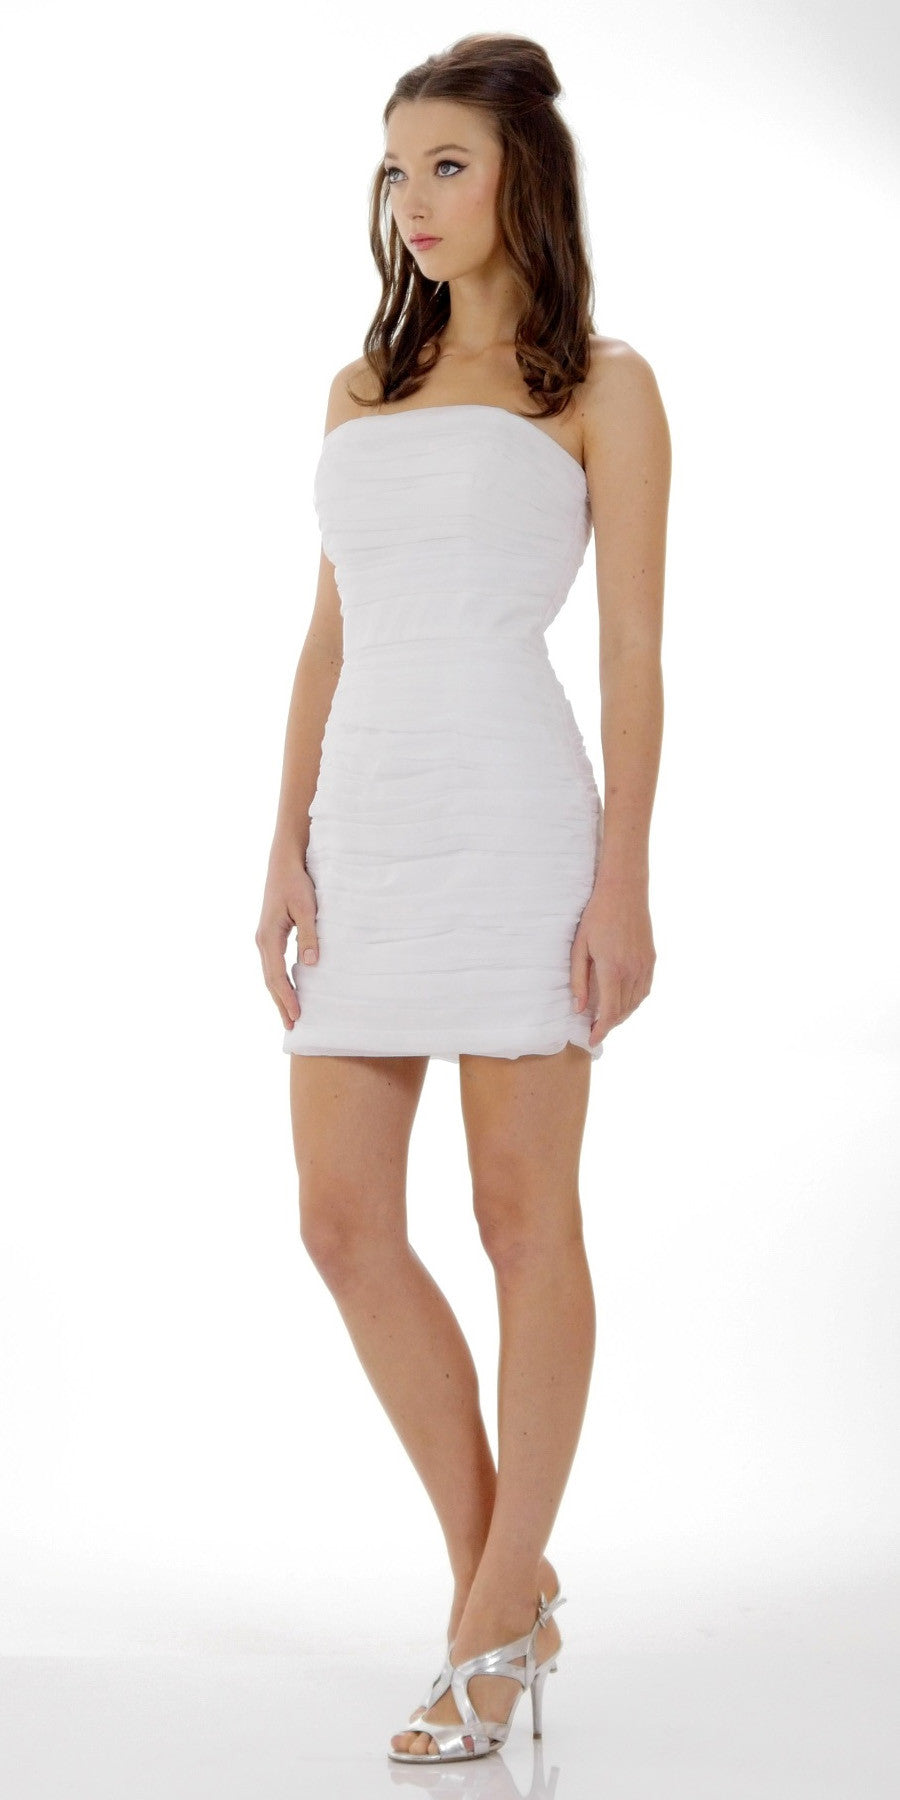 6d2e1a82e36 ... Ruched Strapless Straight Neckline White Bodycon Dress. Tap to expand